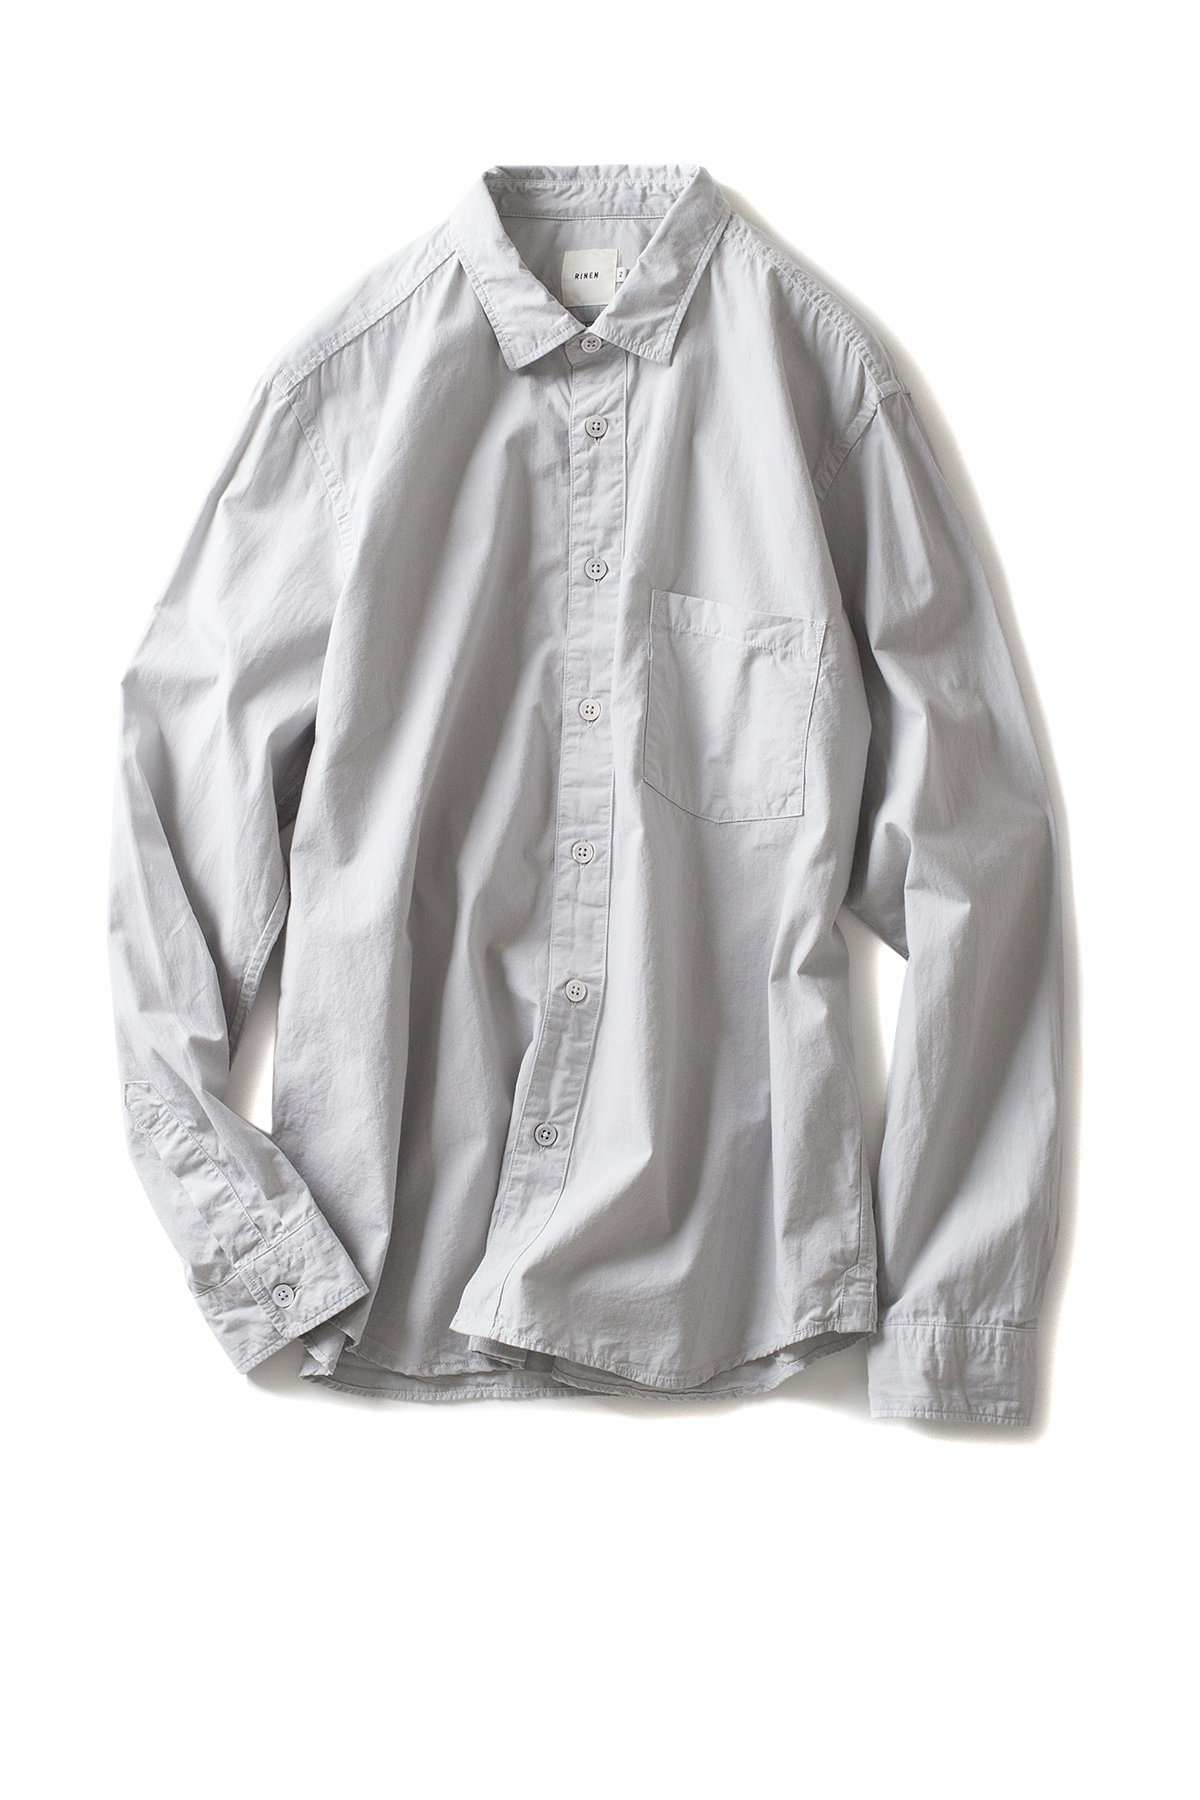 RINEN : Organic Broad Regular Collar Shirt (L.Grey)